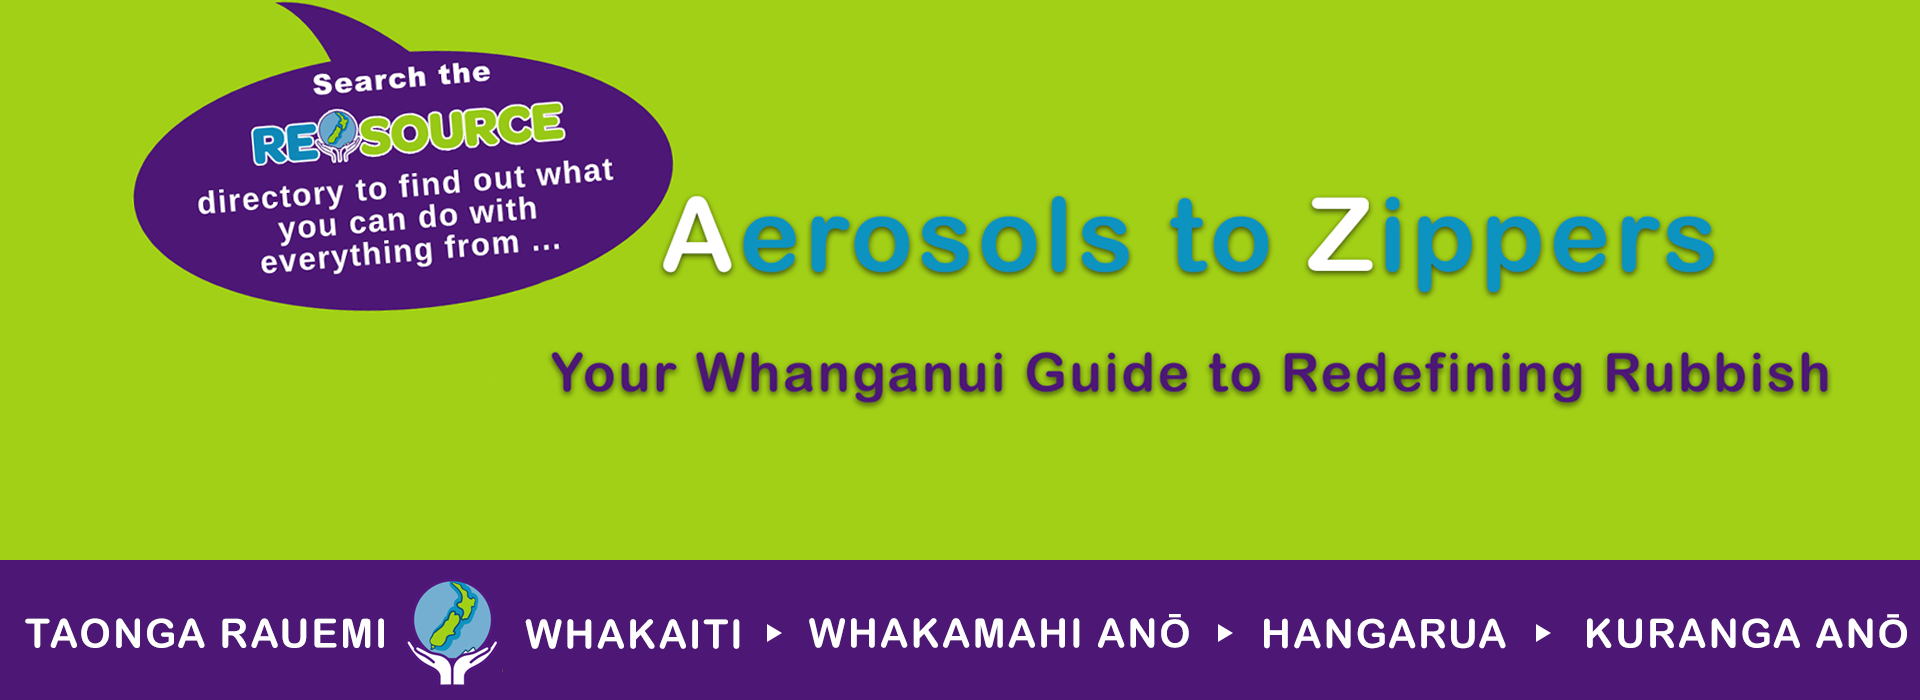 ReSources Whanganui